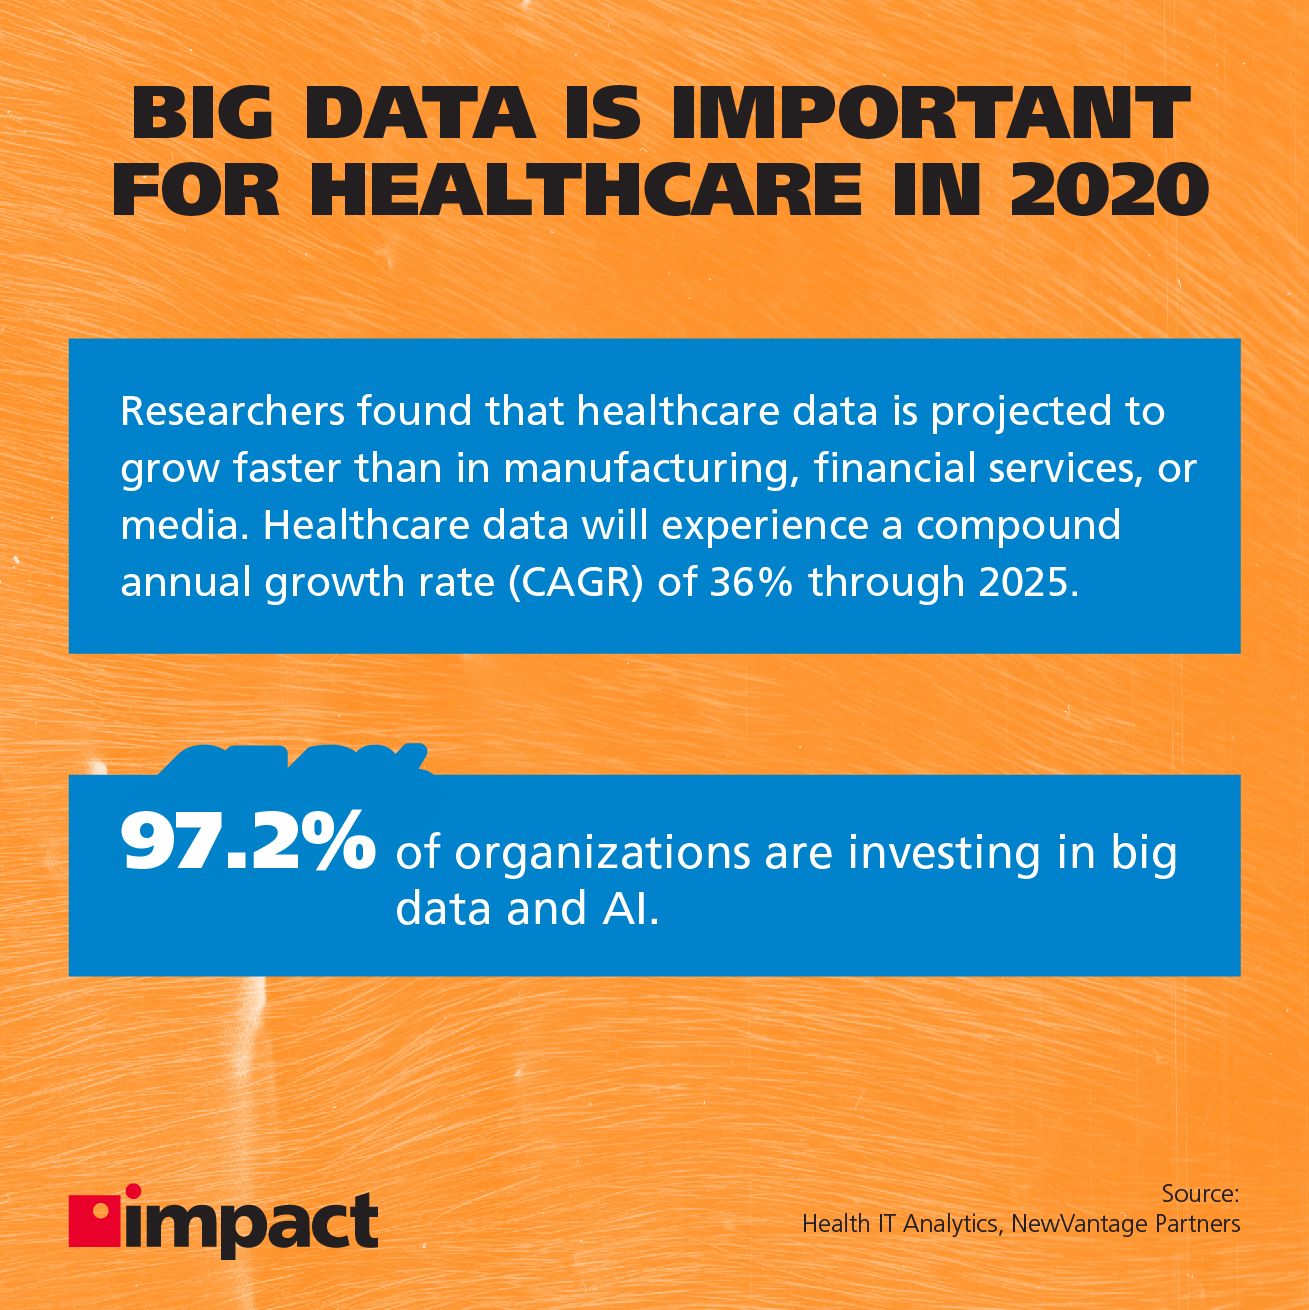 Big data is important for healthcare in 2020